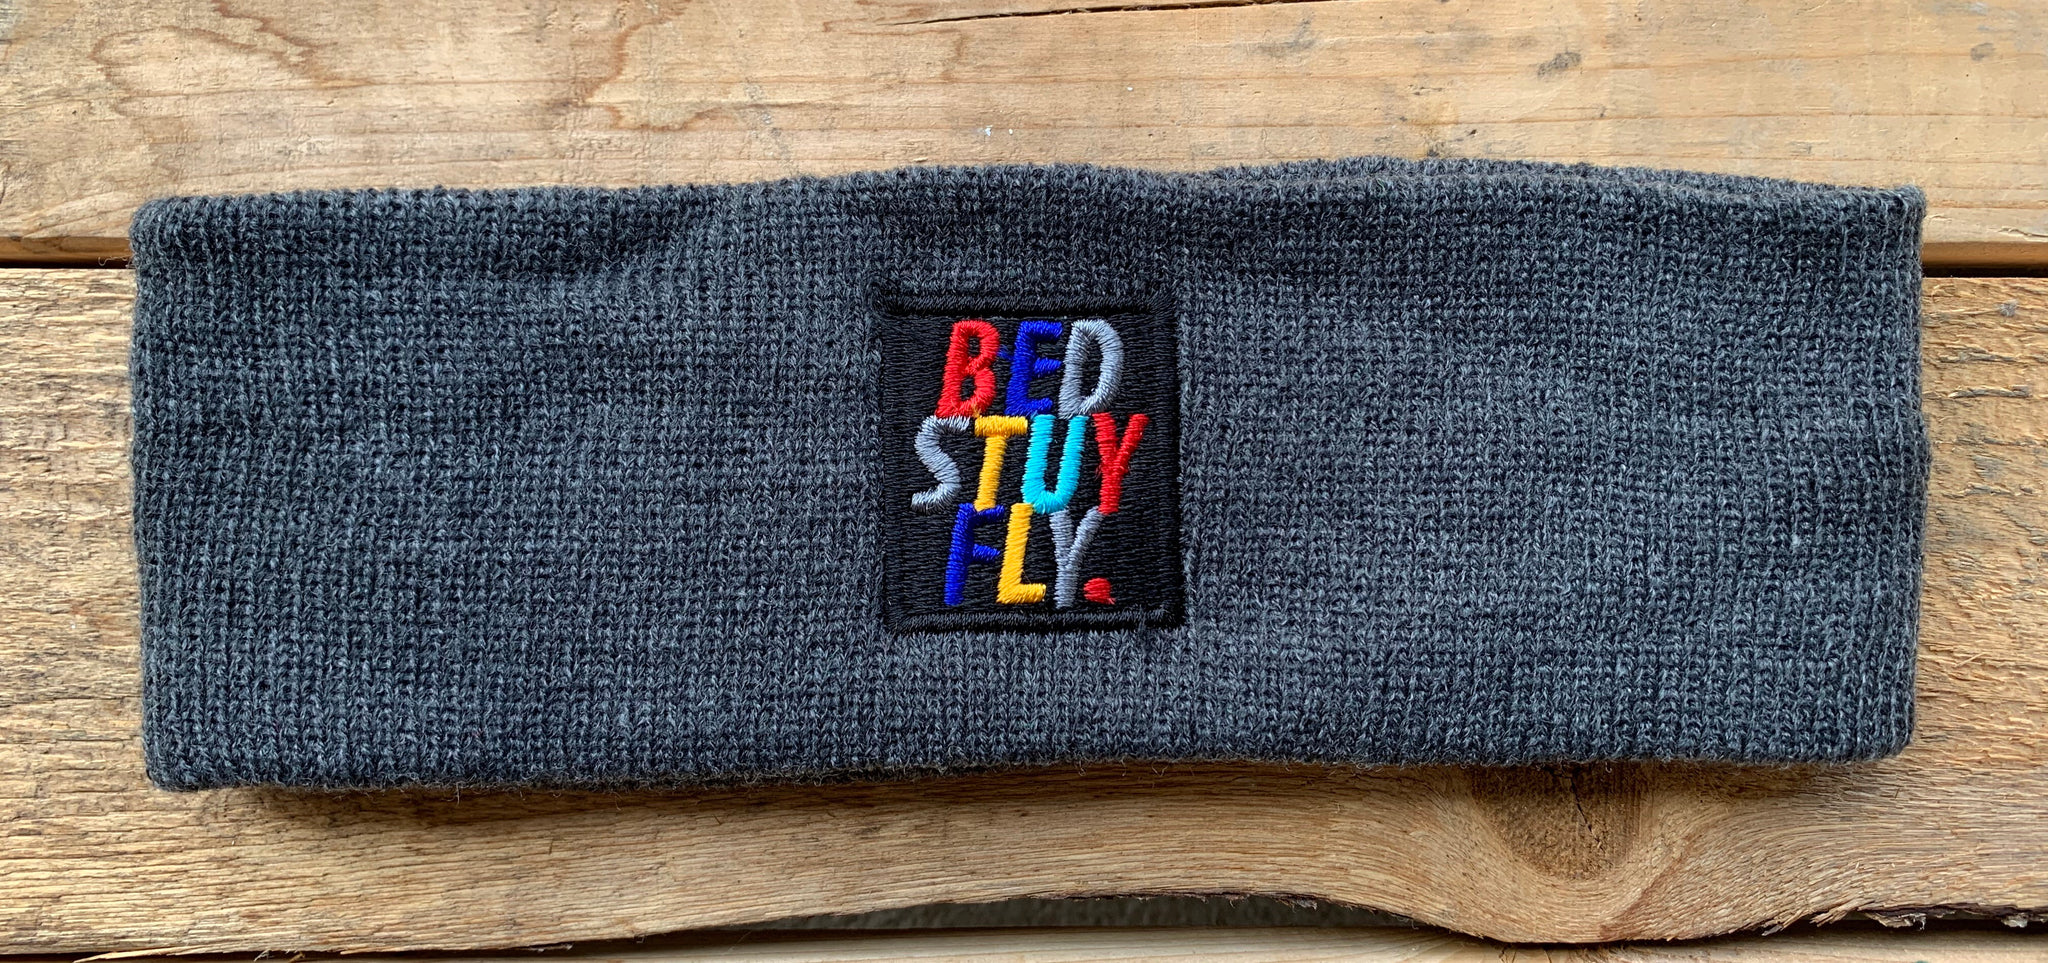 Bedstuyfly Colors Headband (Charcoal)